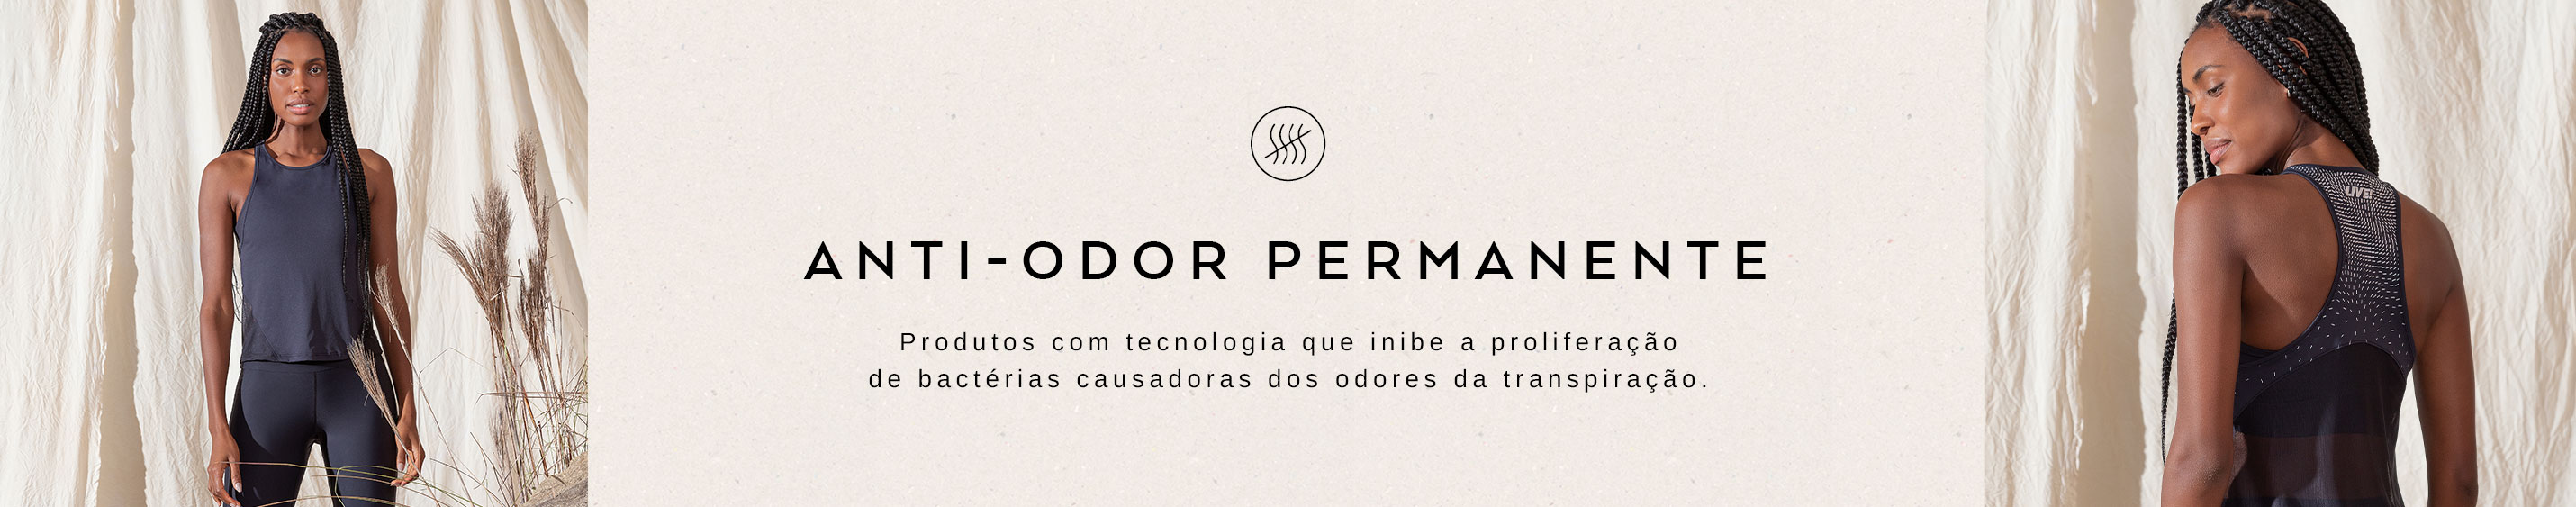 banner_anti_odor_permanente